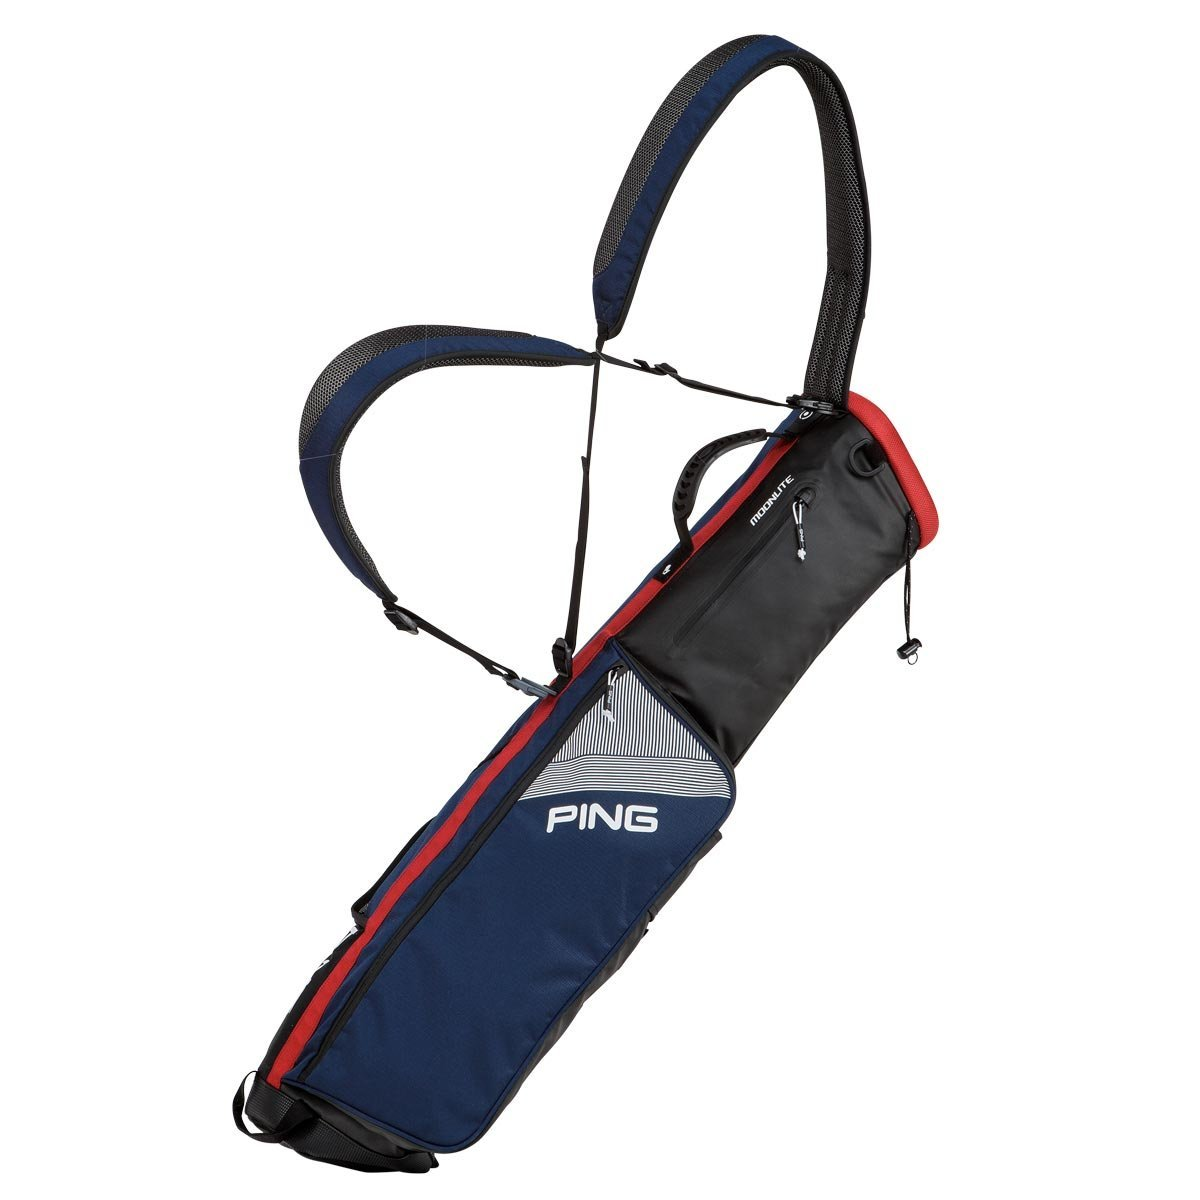 Ping 2018 MOONLITE 181 CARRY GOLF BAG 04 NAVY/RED/WHITE